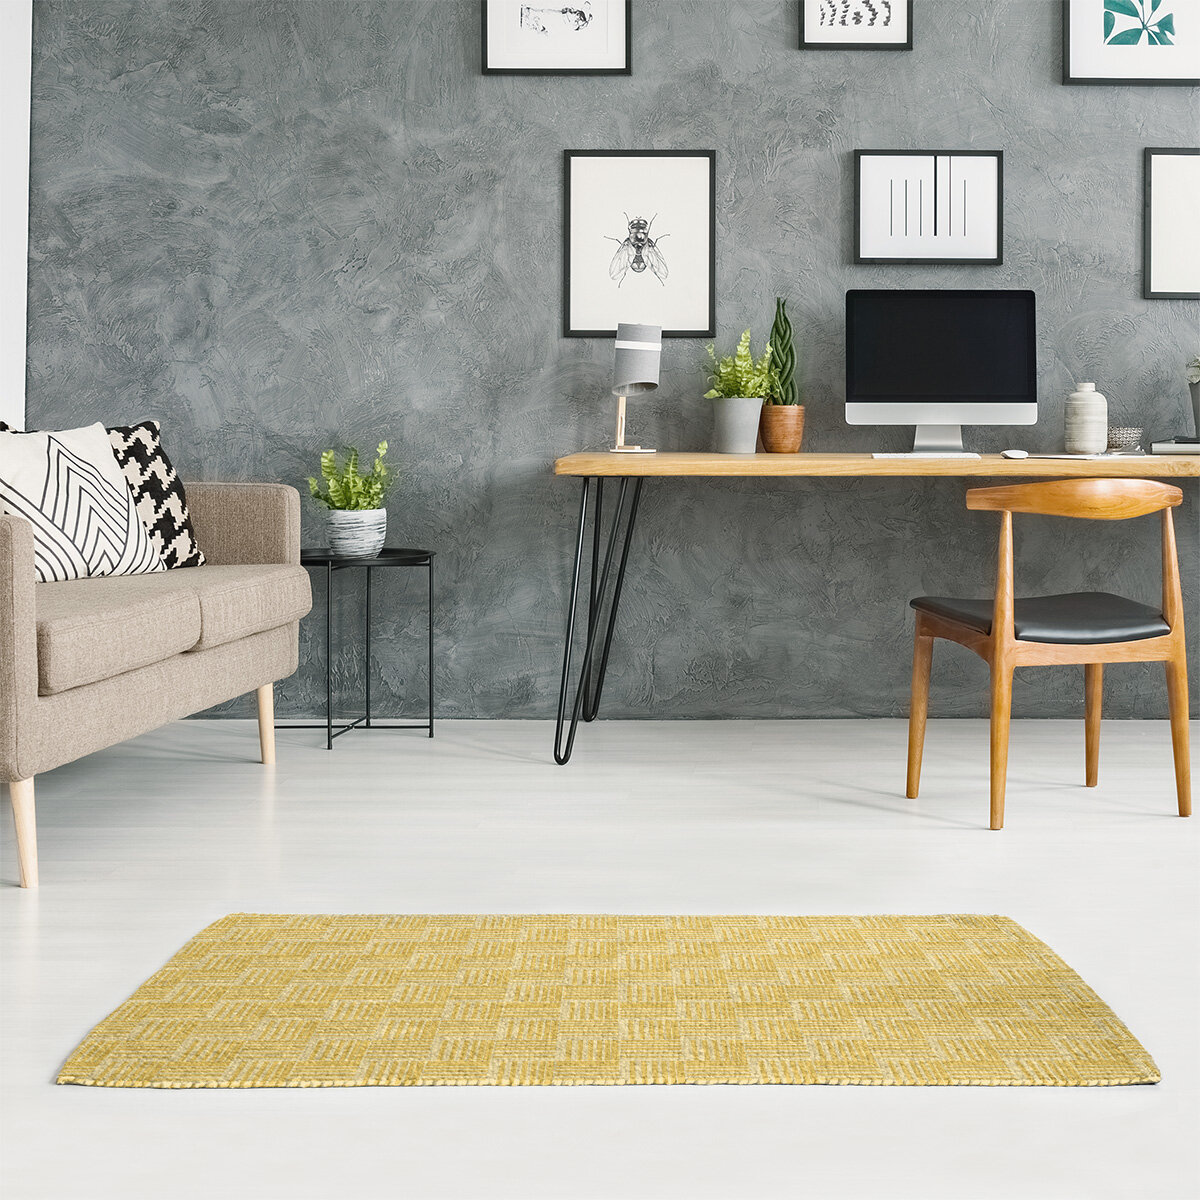 East Urban Home Monochrome Basketweave Stripes Yellow Area Rug Wayfair